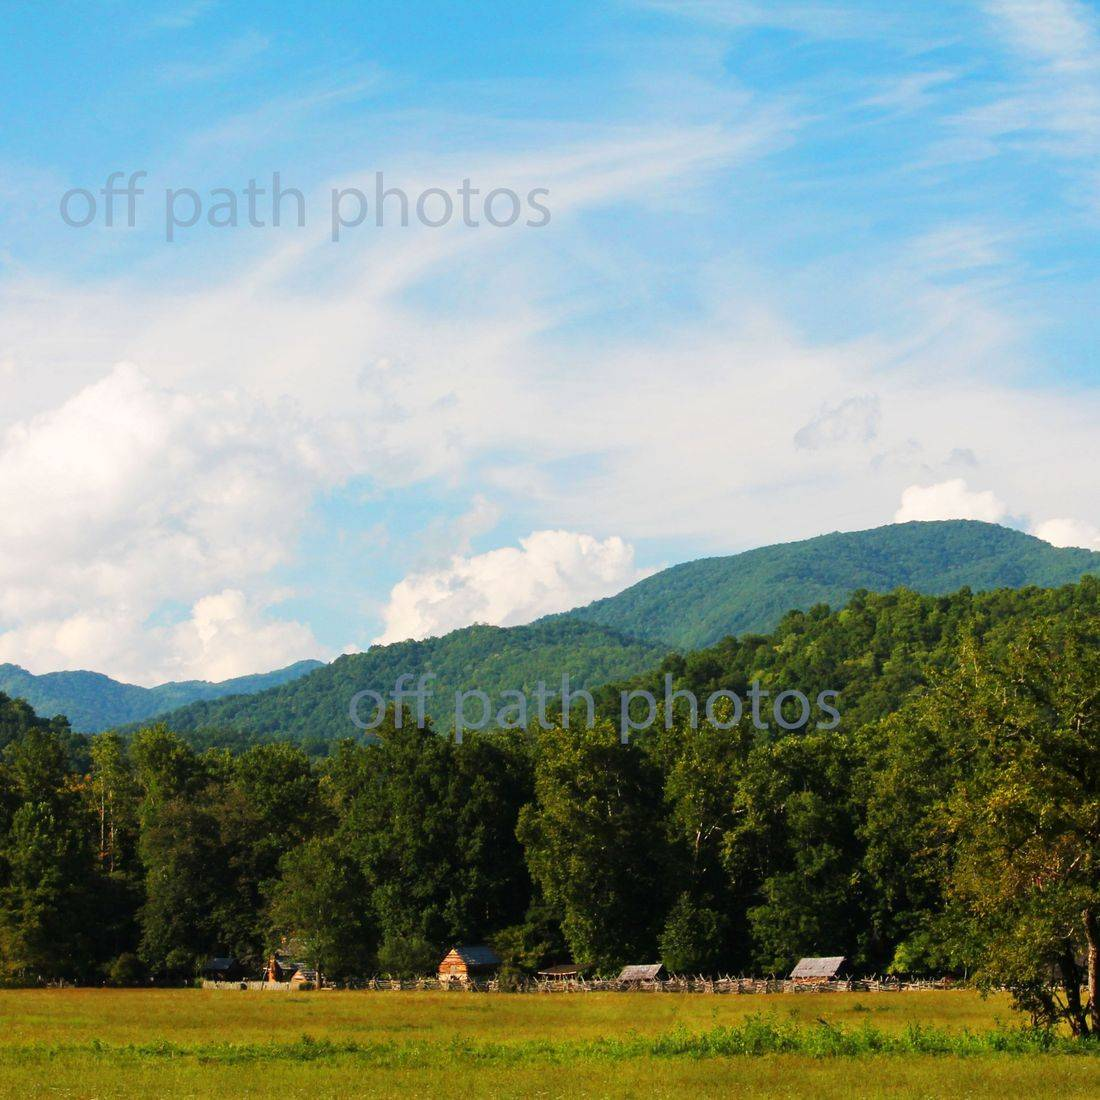 photography, mountains, summer, nature, Tennessee, log cabins, sky, clouds, relaxing